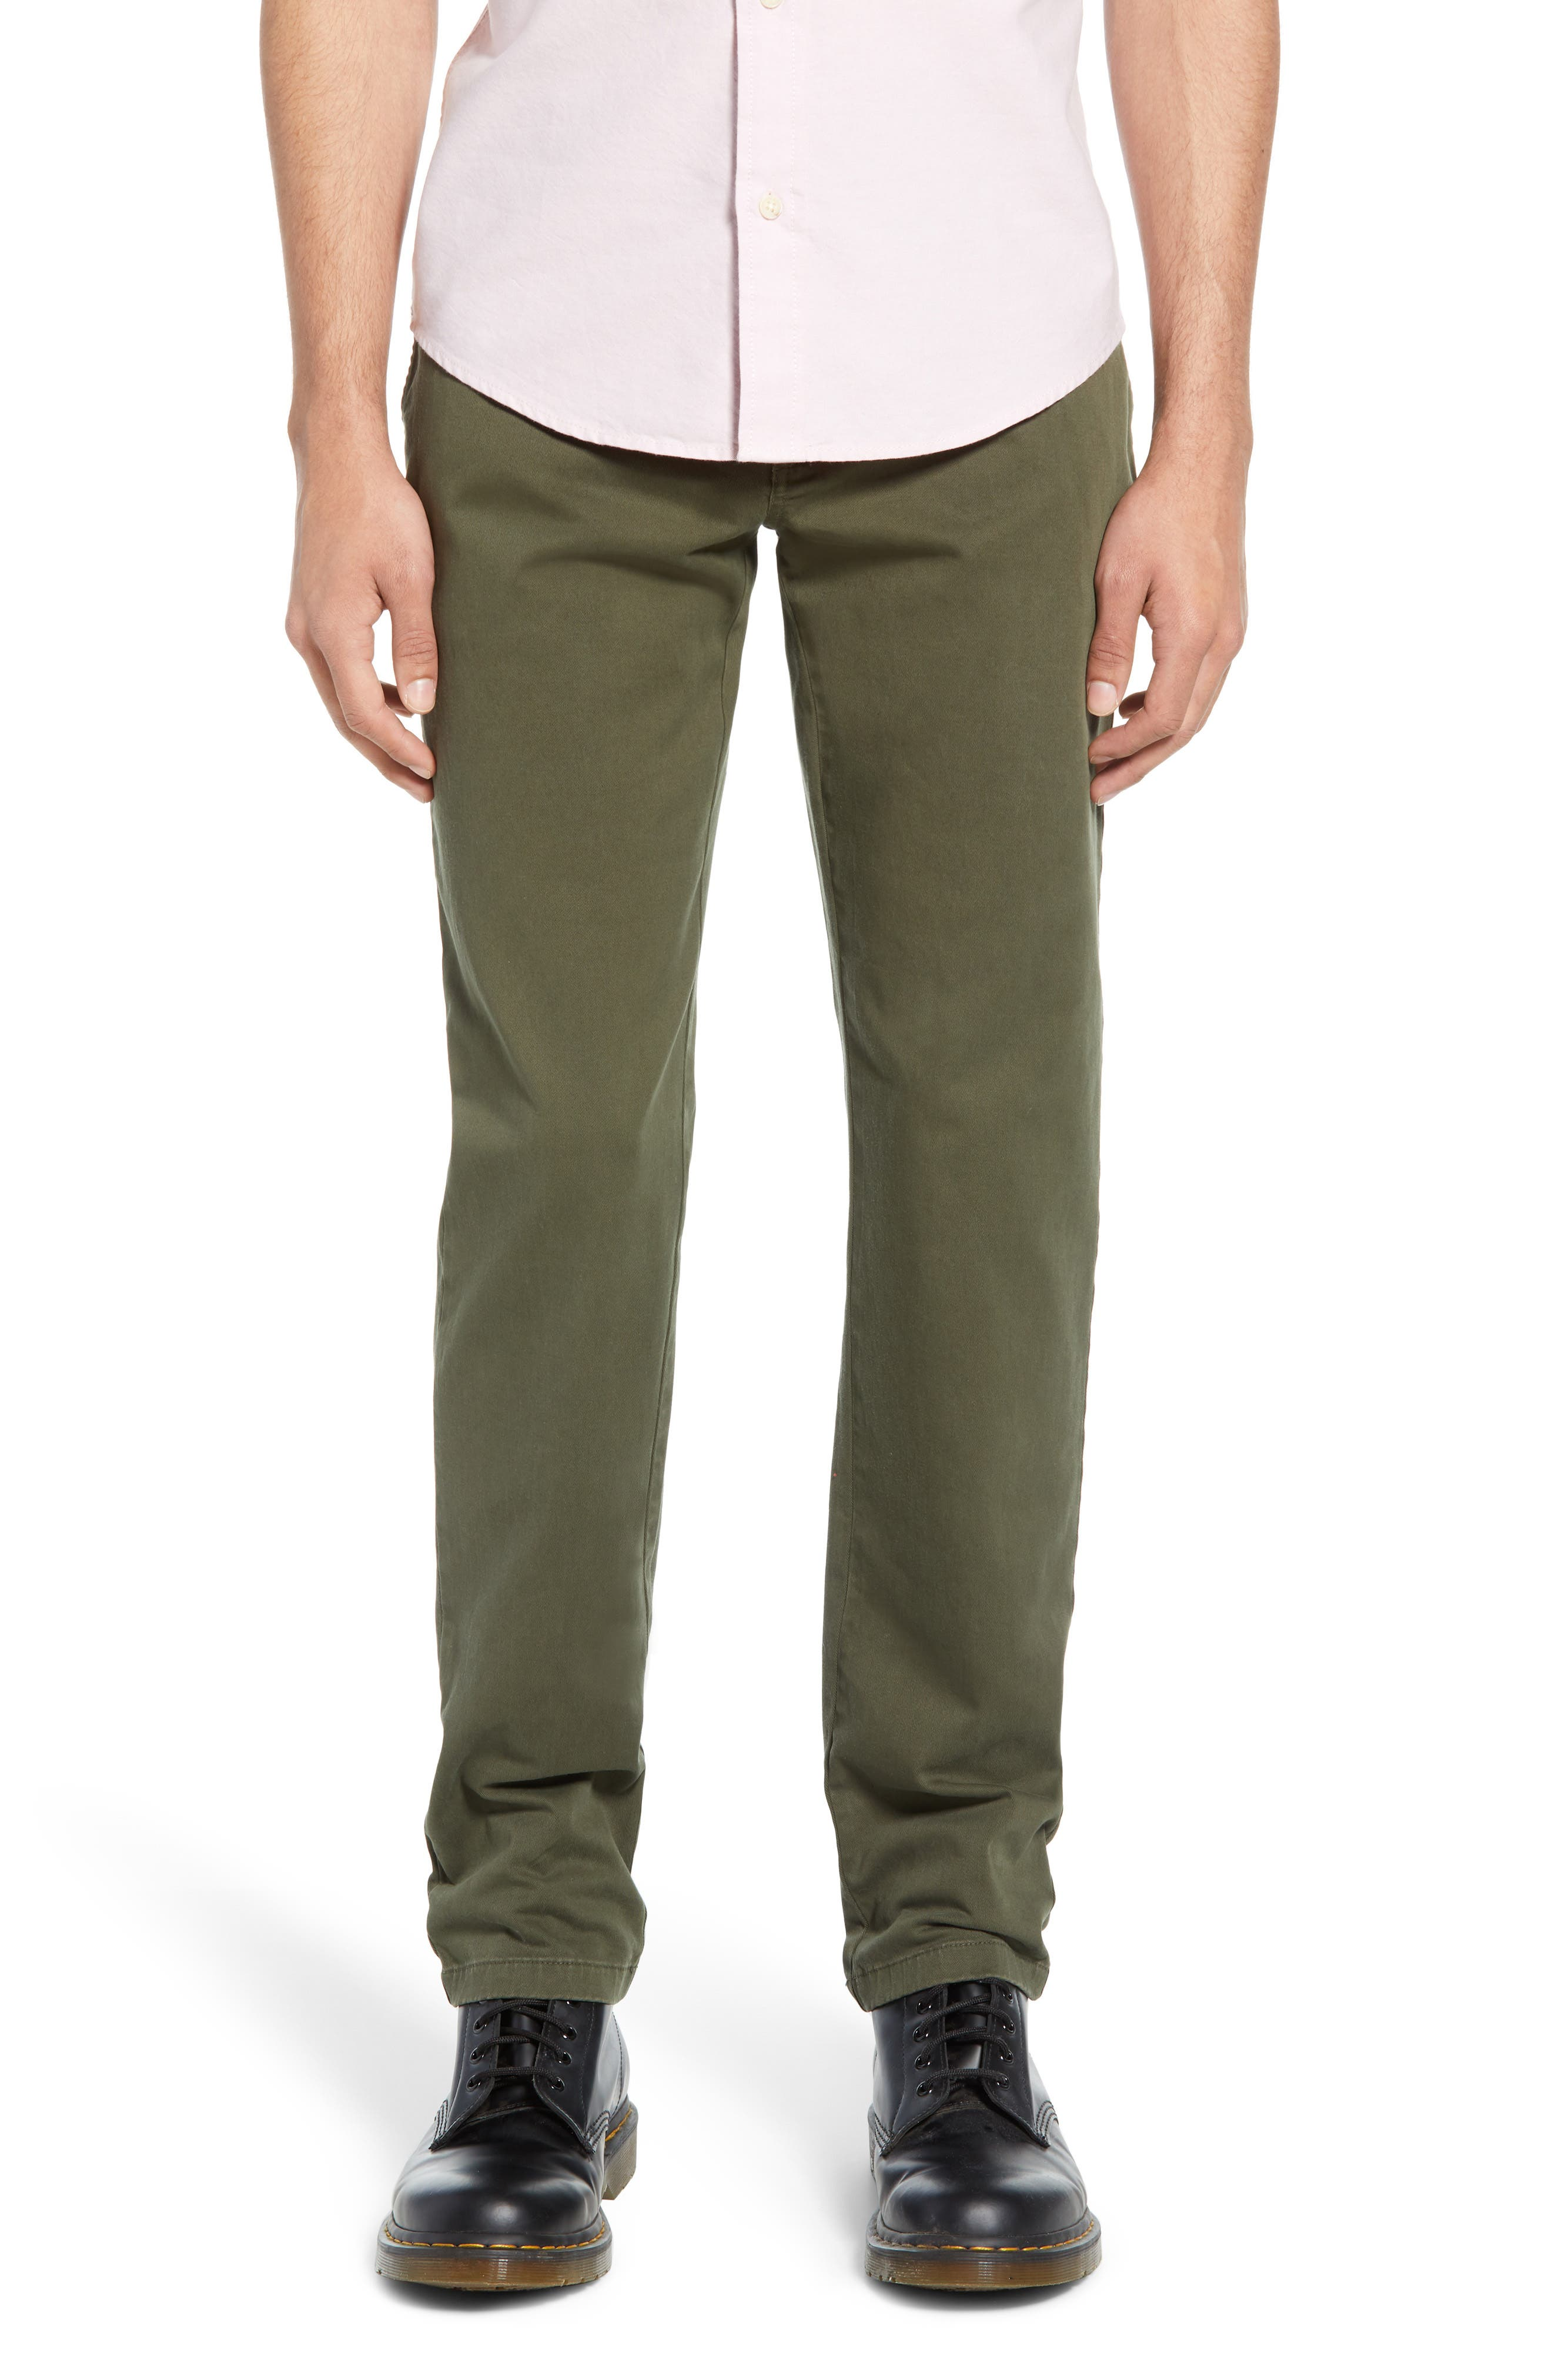 THE RAIL Slim Fit Chinos, Main, color, OLIVE GROVE